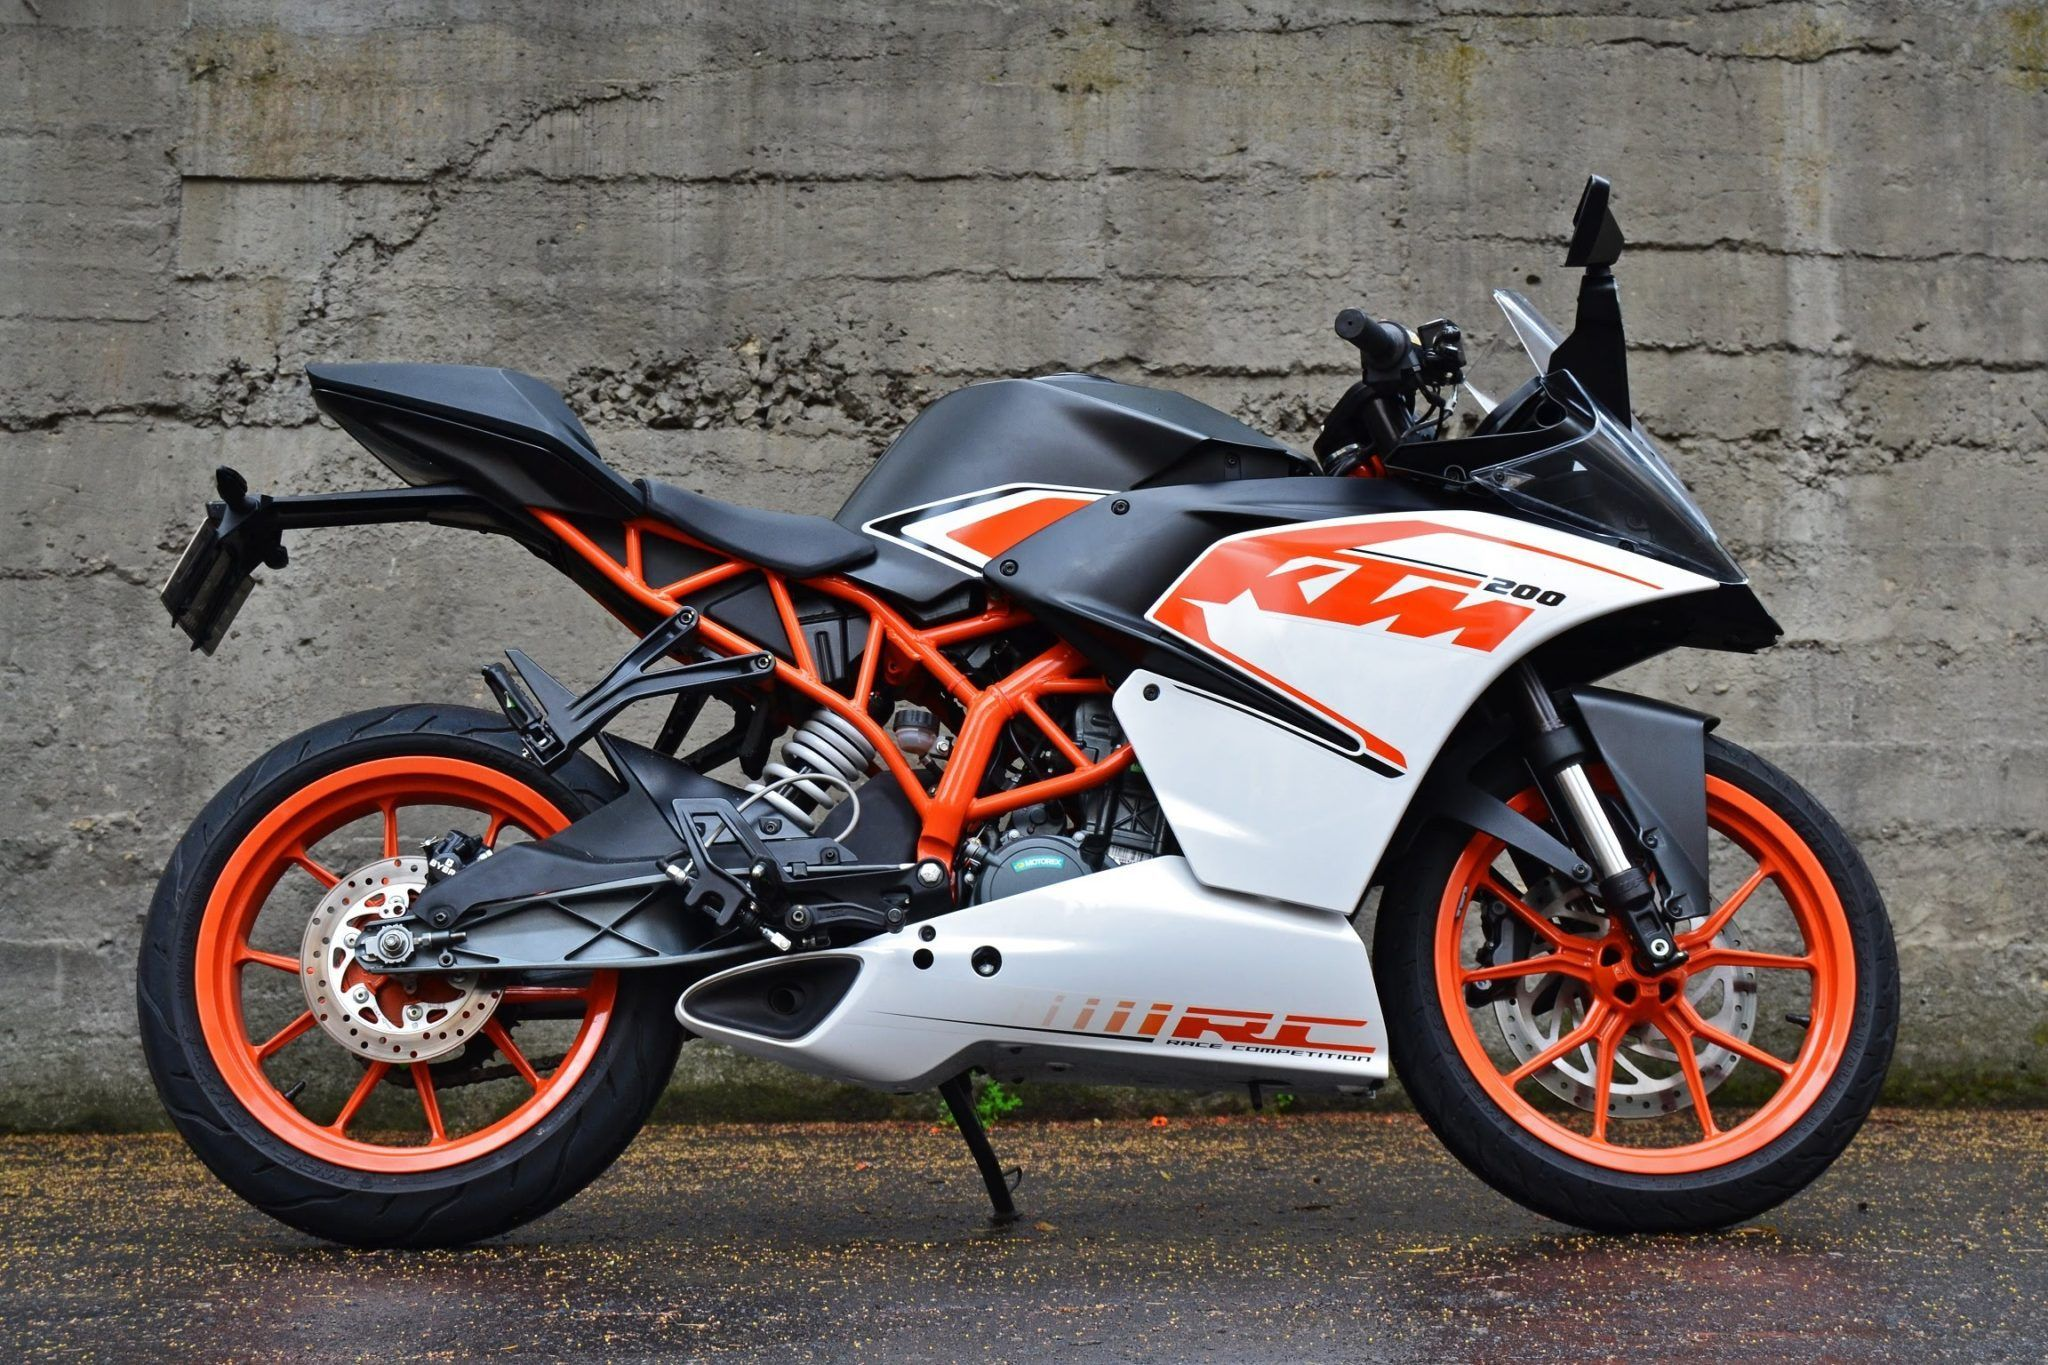 KTM RC 200 Price, Mileage, Specifications, Colors, Top Speed and Servicing Schedule